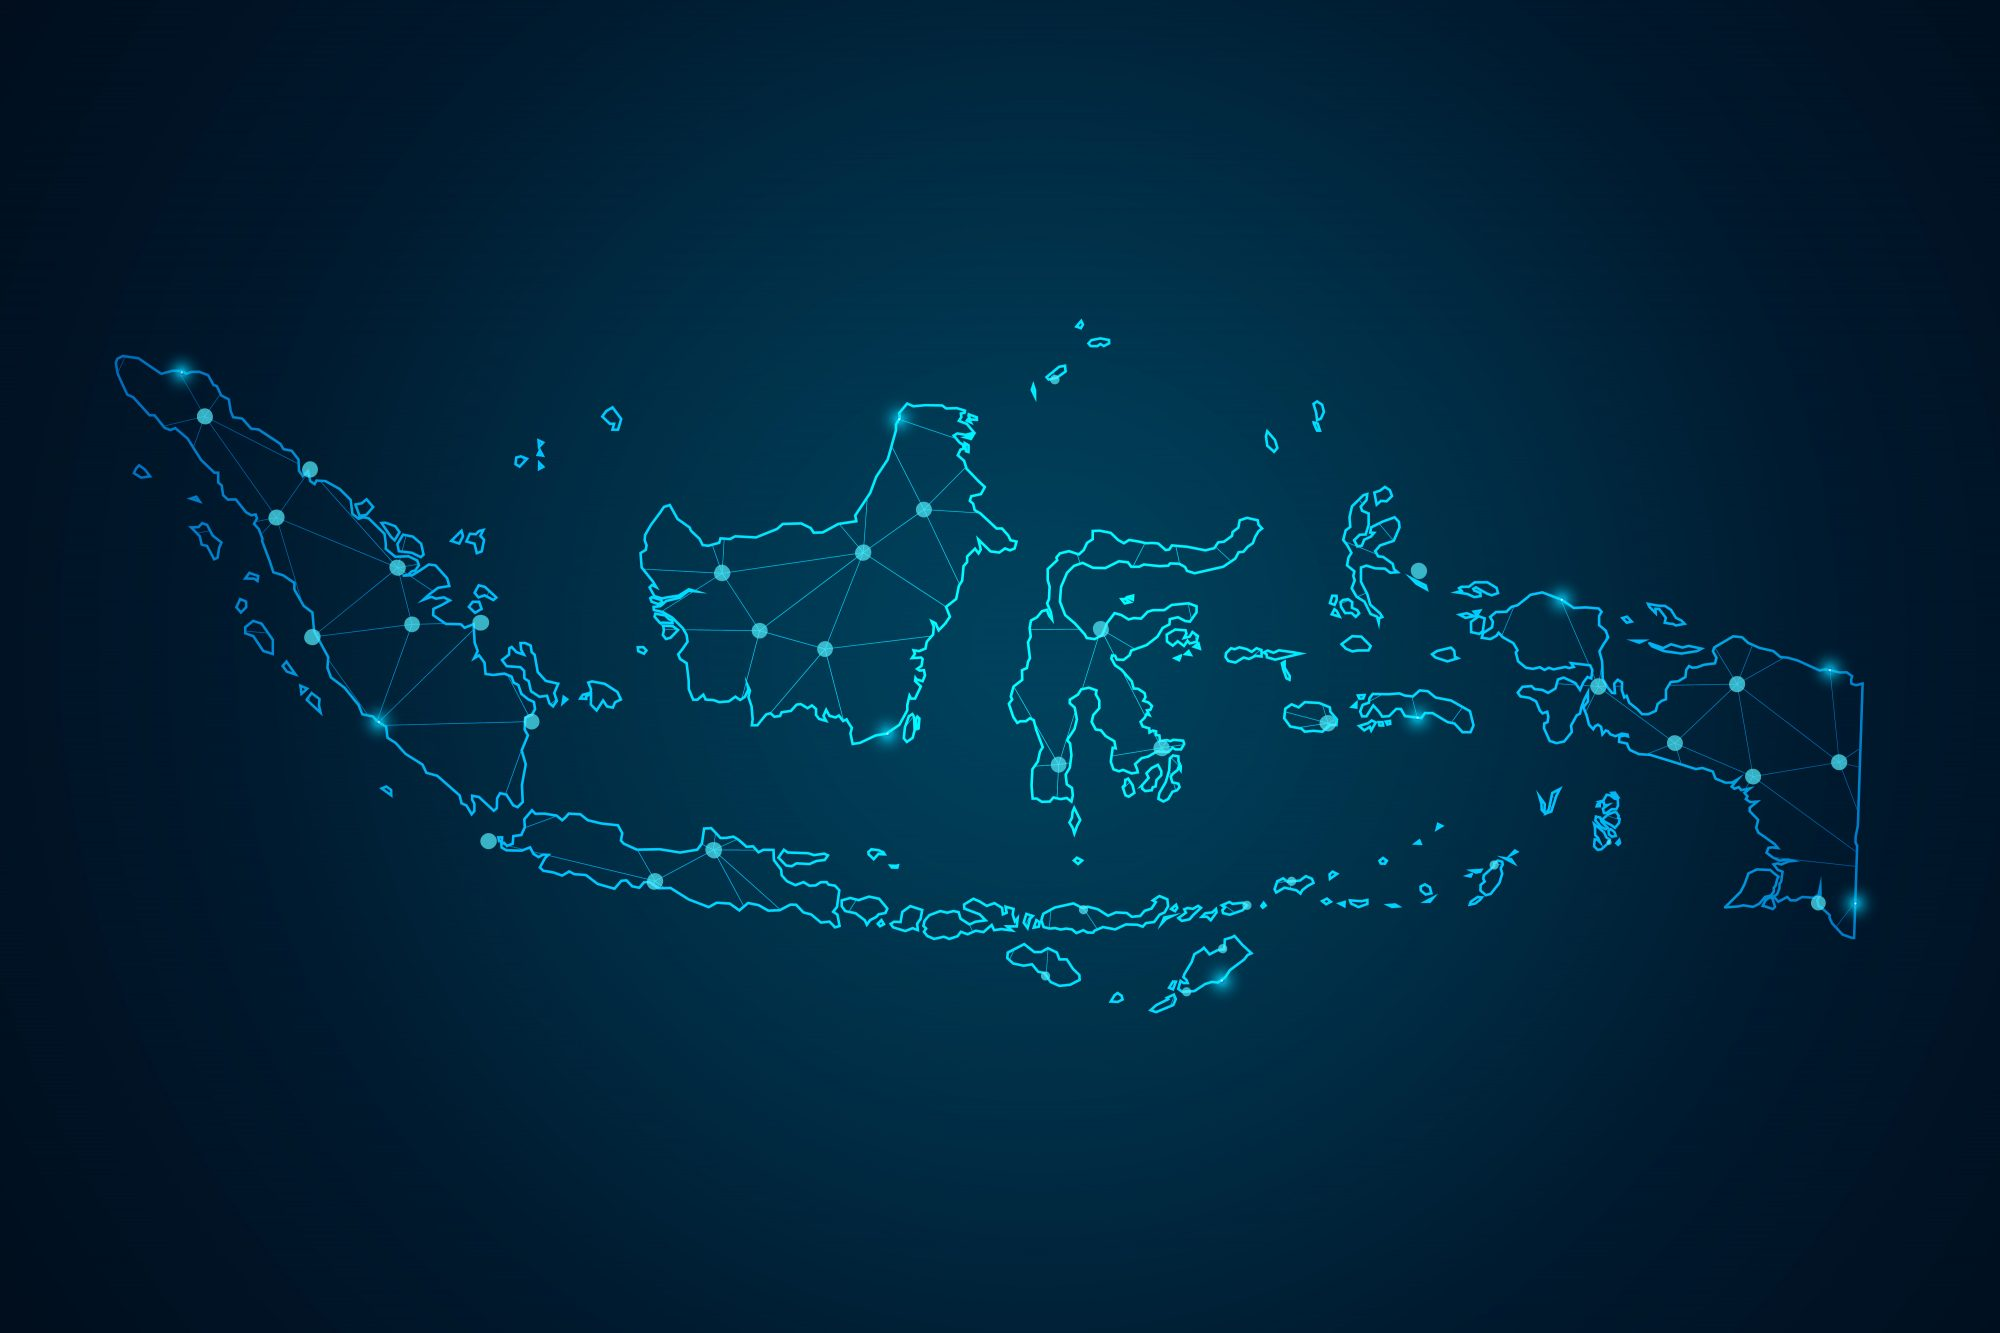 Indonesia: The Blockchain-Driven Digital Archipelago